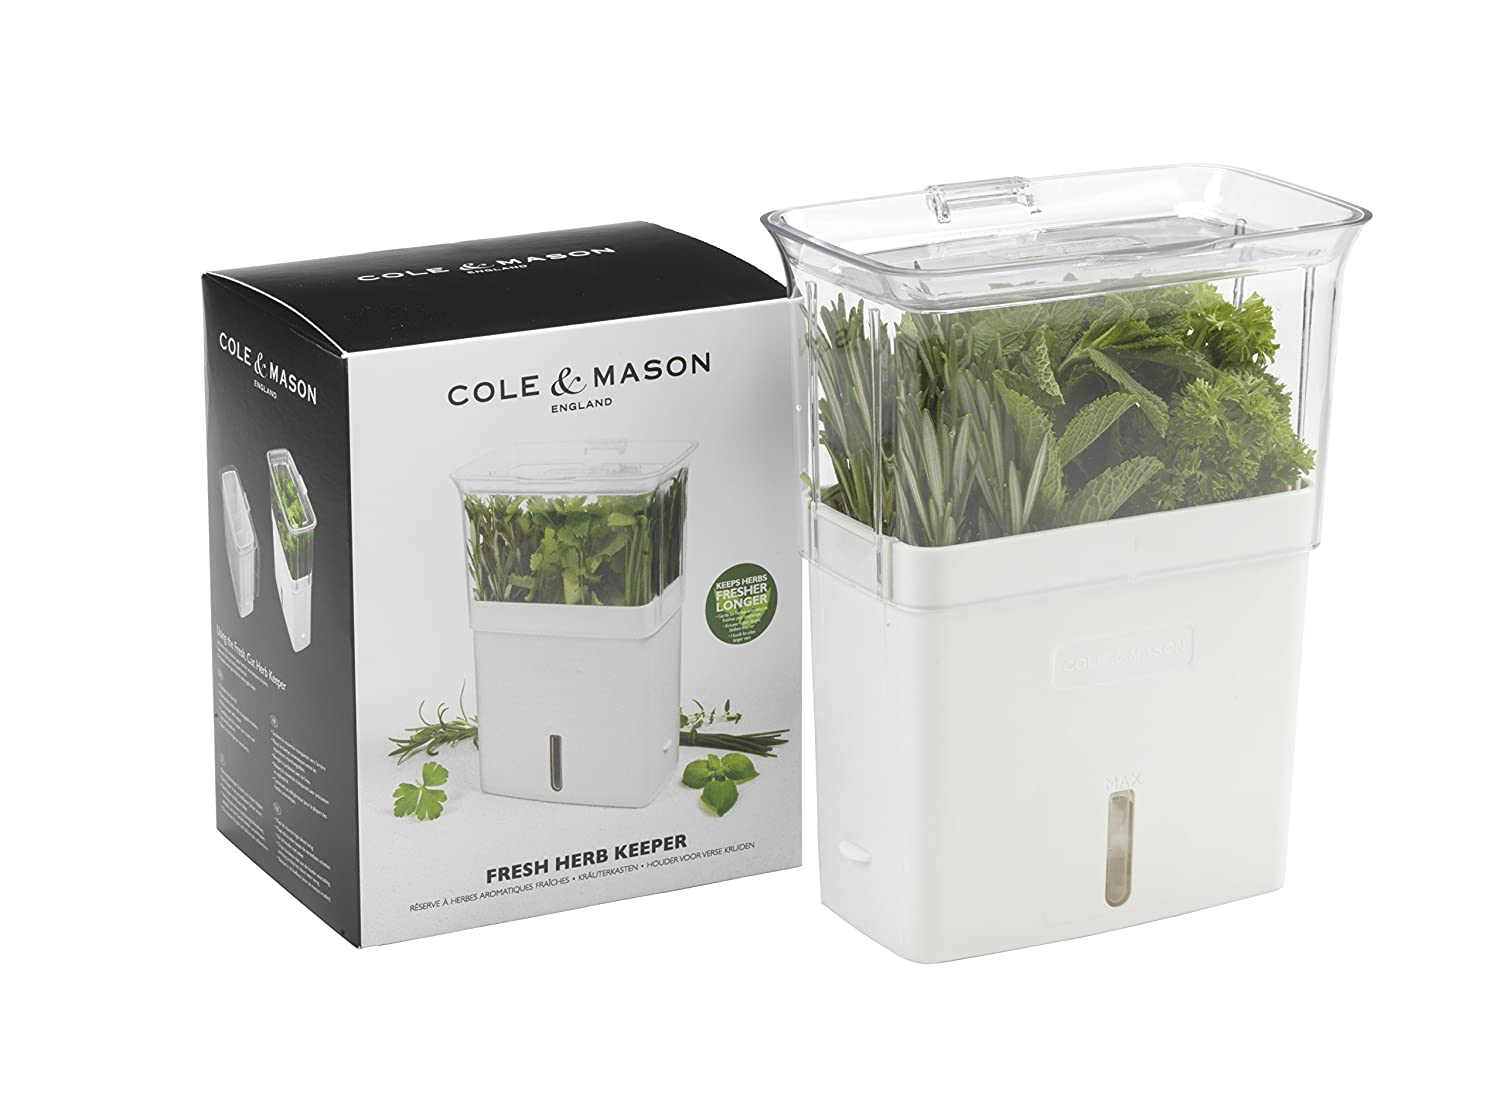 Cole & Mason Fresh Herb Range Cut Herb Keeper, White and Grey, 12 x 16 x 20 cm DKB HOUSEHOLD DISTRIBUTION AG H105159